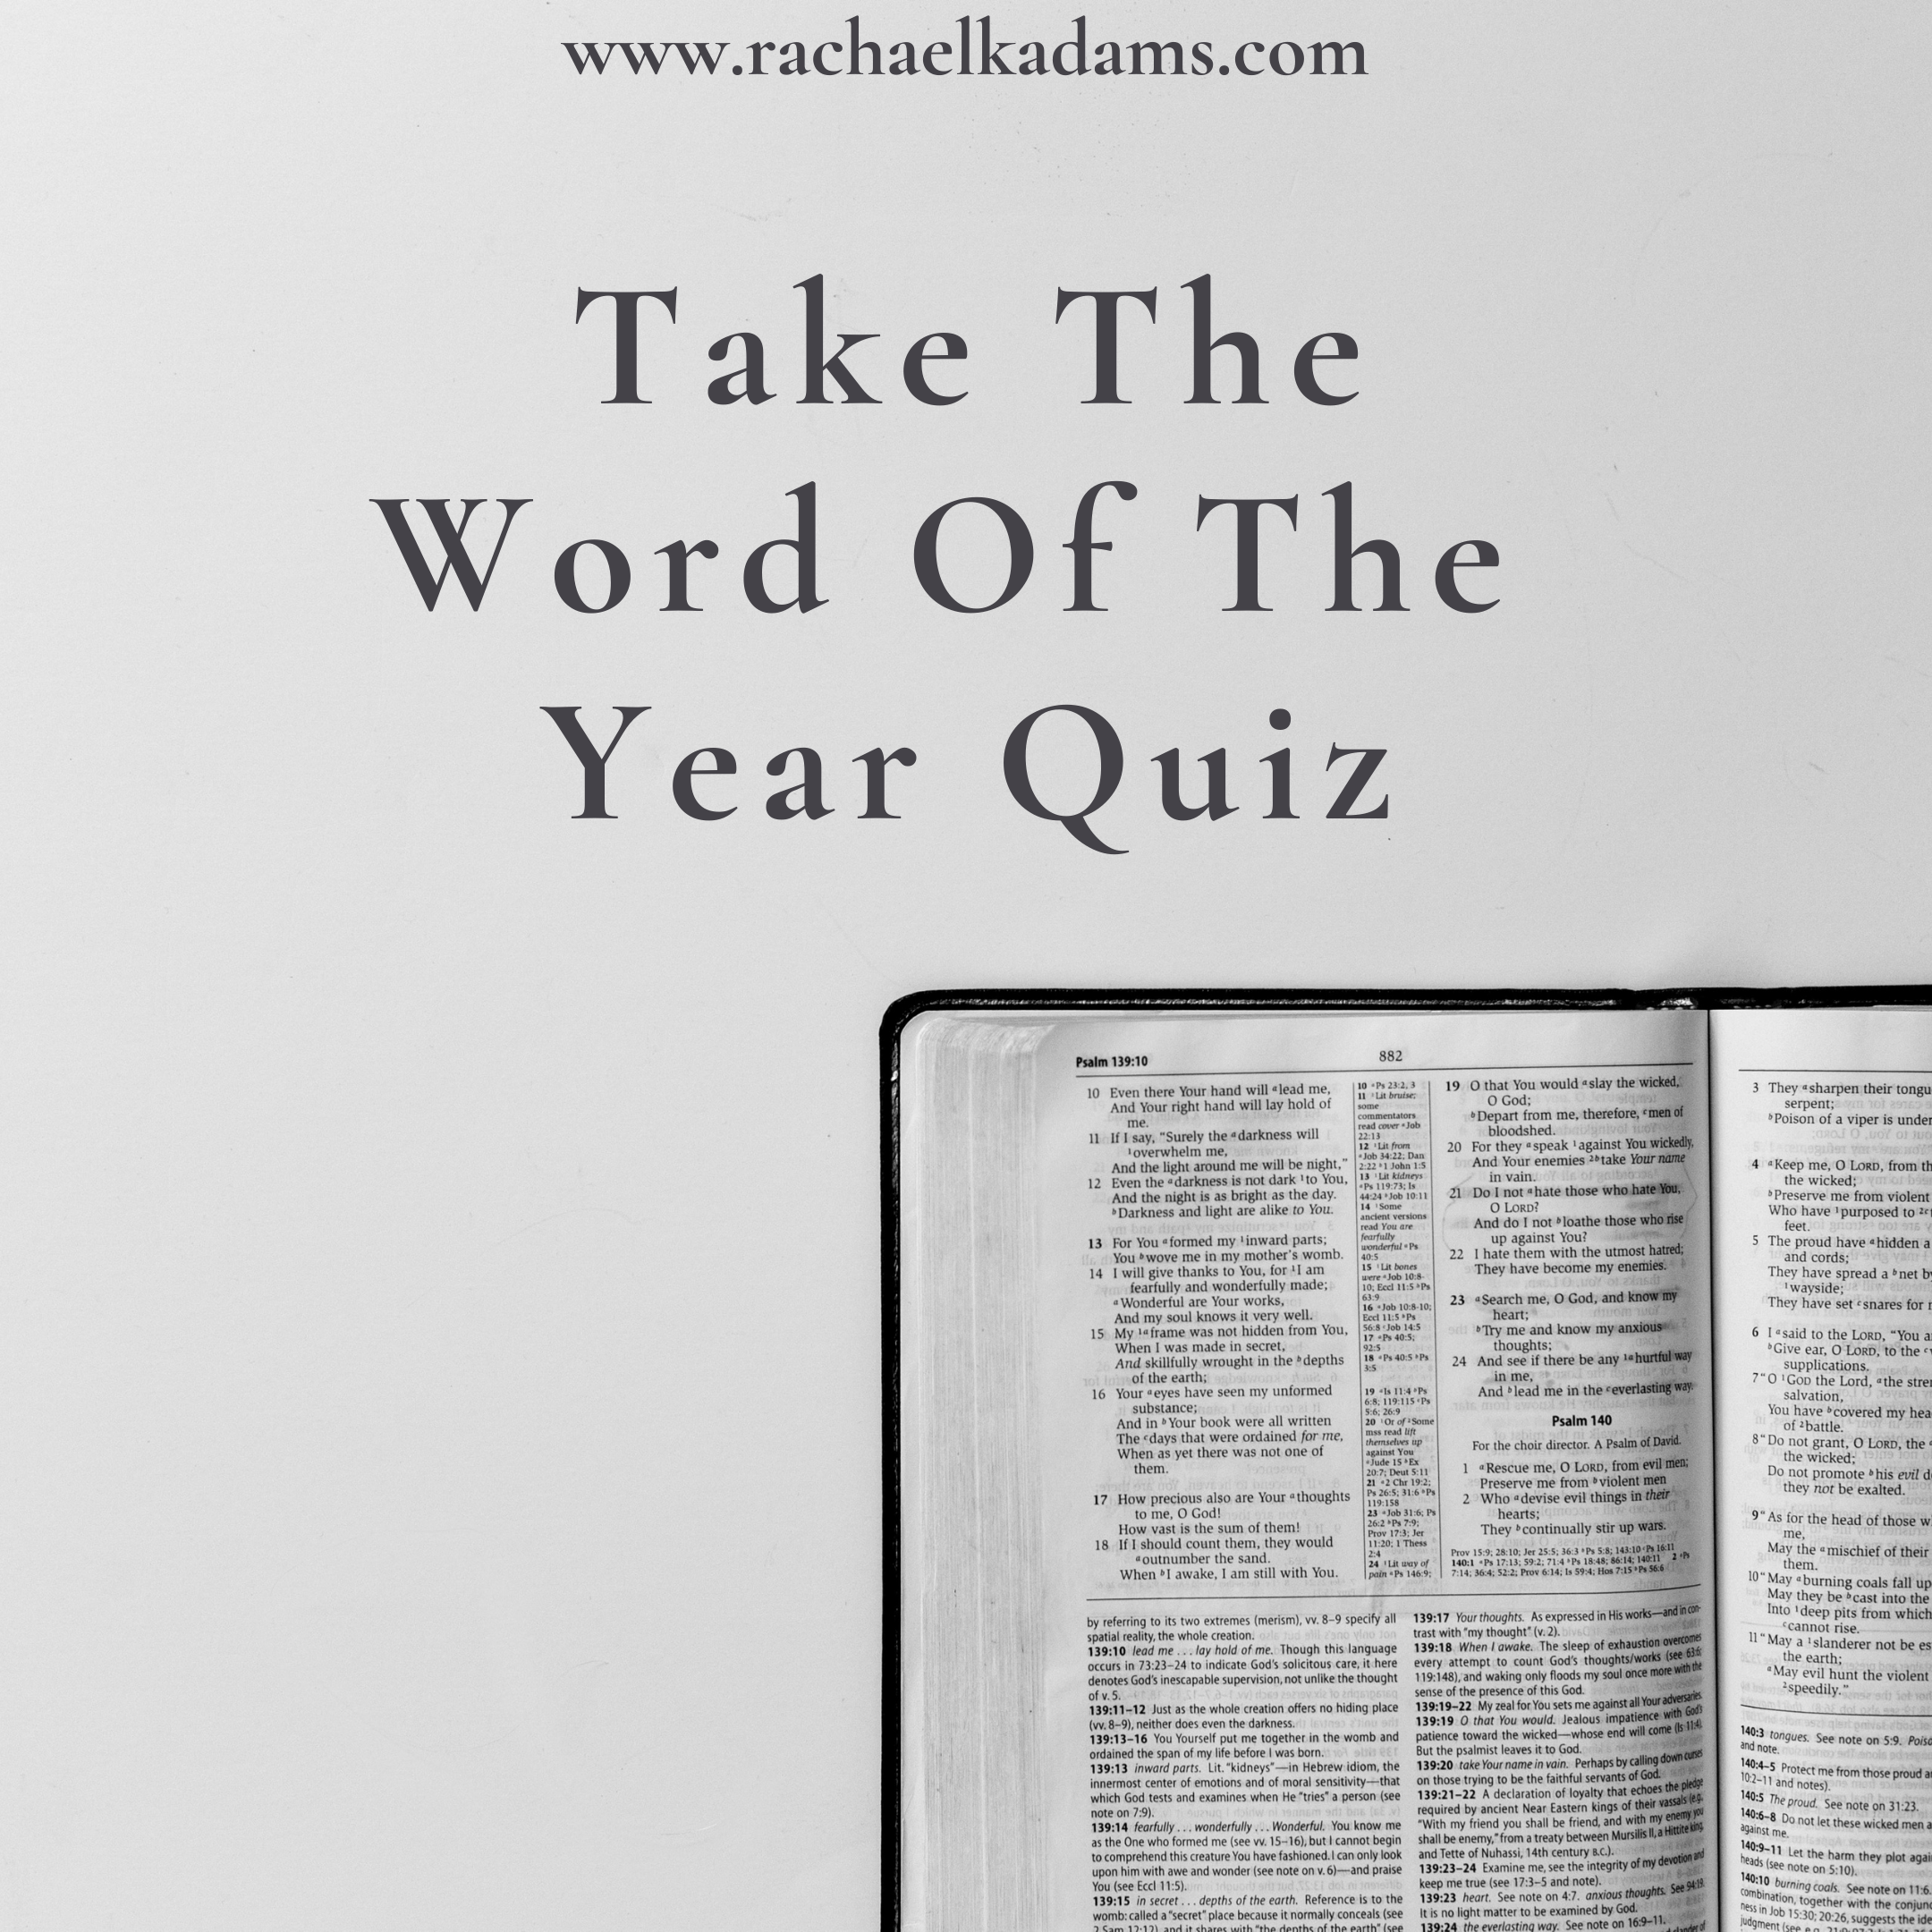 The Word Of The Year Quiz